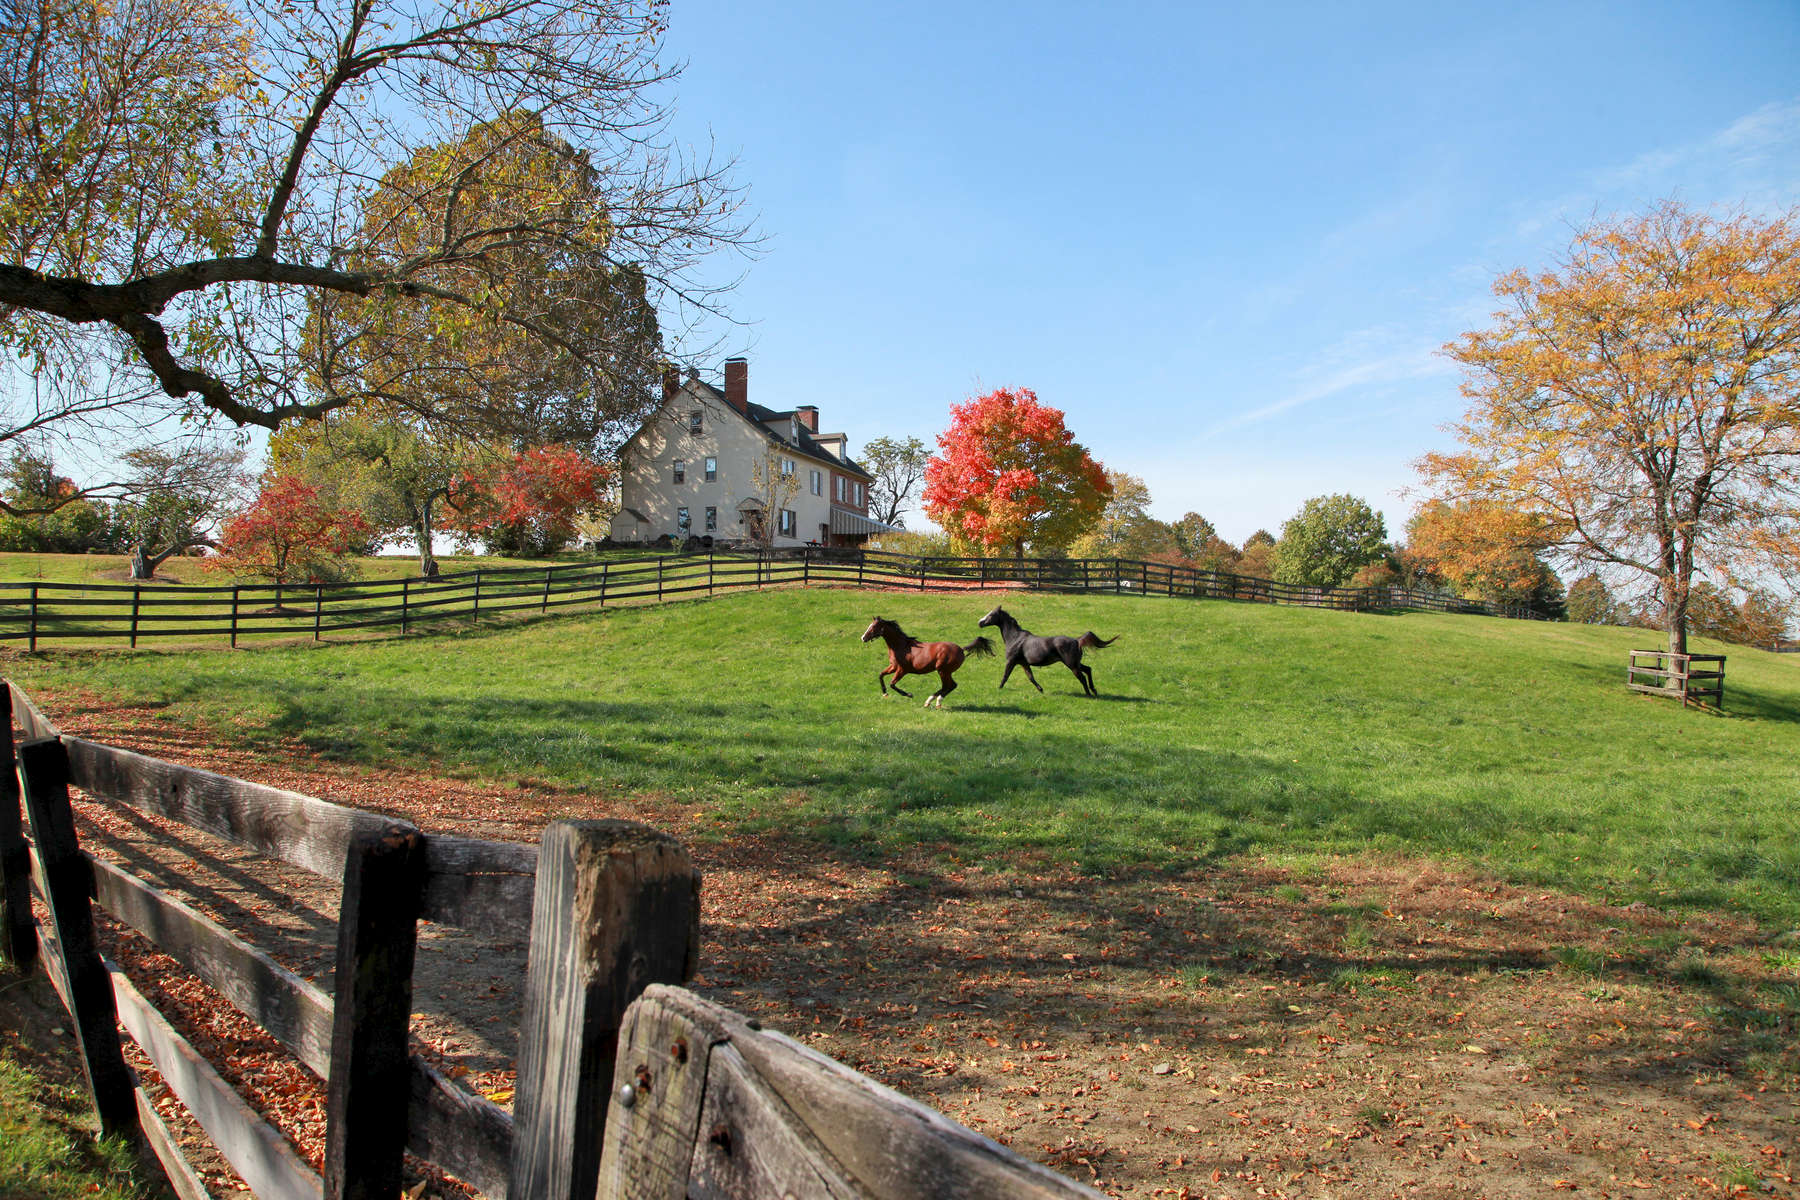 Lefty (L) a colt by Orientate and Cacaway a gelding by St. Everil gallop in front of the main house at Bright View Farm in Chesterfield, New Jersey built in 1736.  Photo By Bill Denver/EQUI-PHOTO.